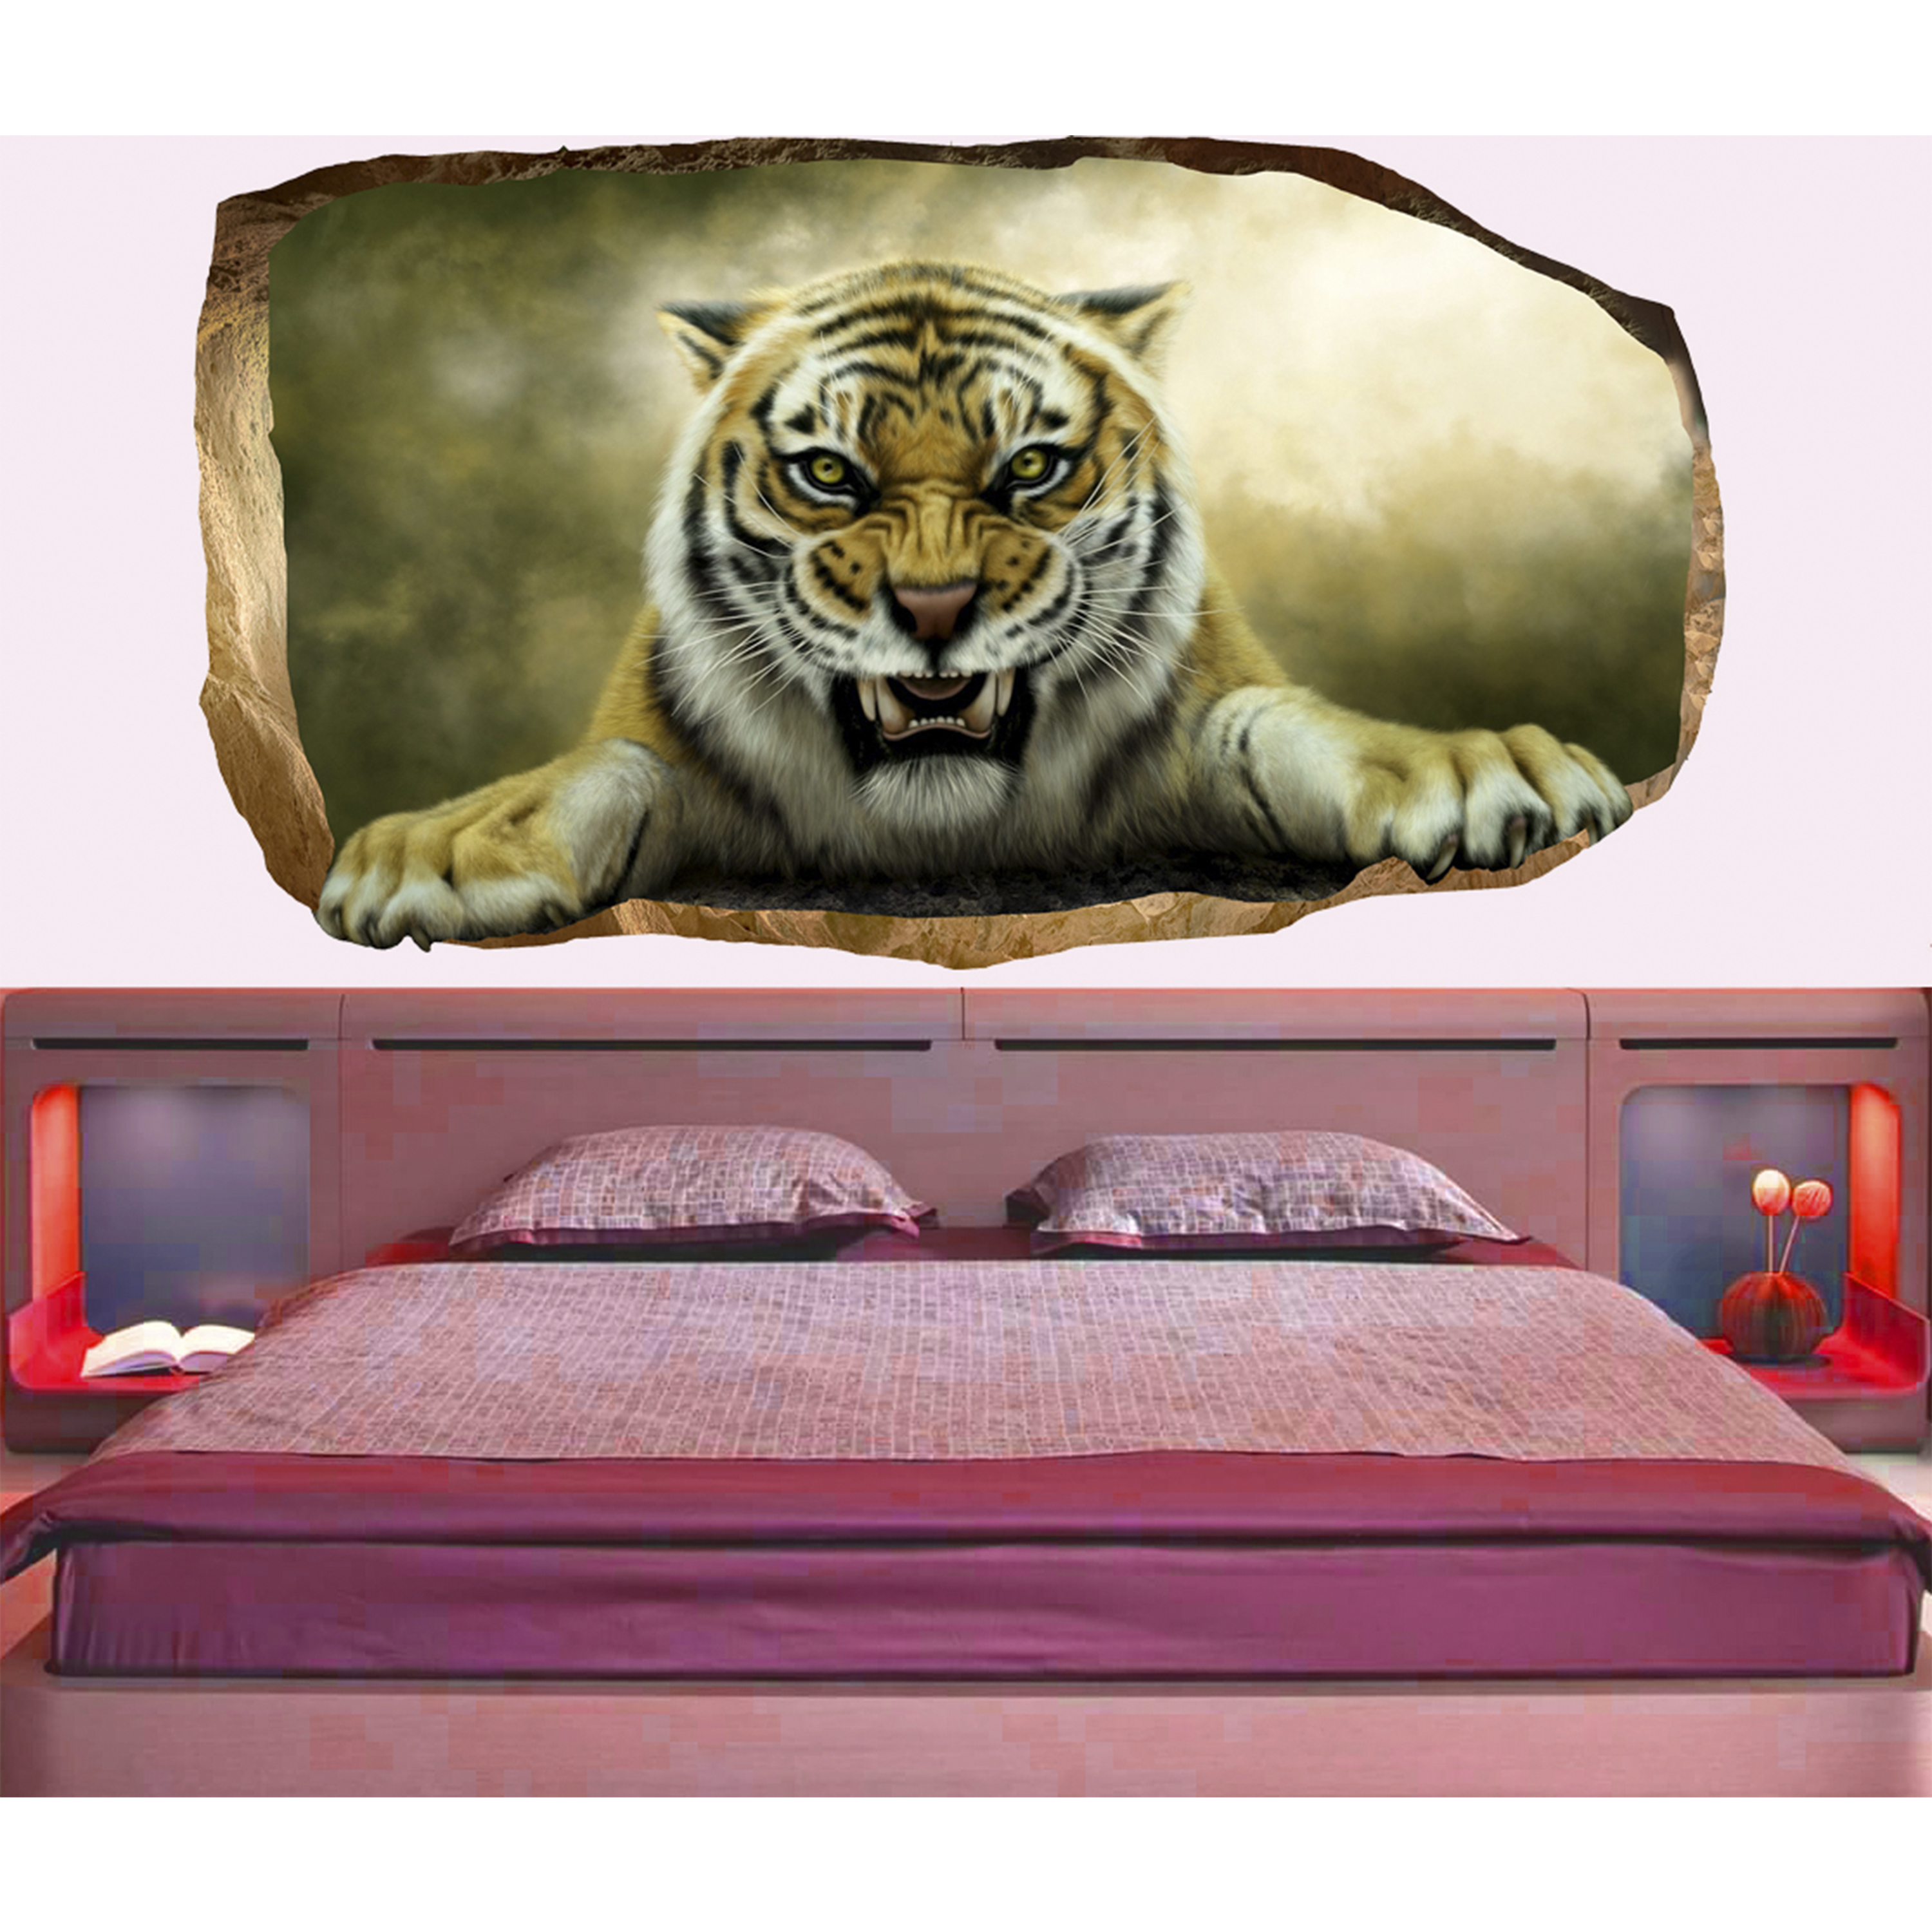 Startonight 3D Mural Wall Art Photo Decor Tiger in Bedroom Amazing Dual View Surprise Wall Mural Wallpaper for Bedroom Animals Wall Paper Art Gift Large 47.24 '' By 86.61 ''